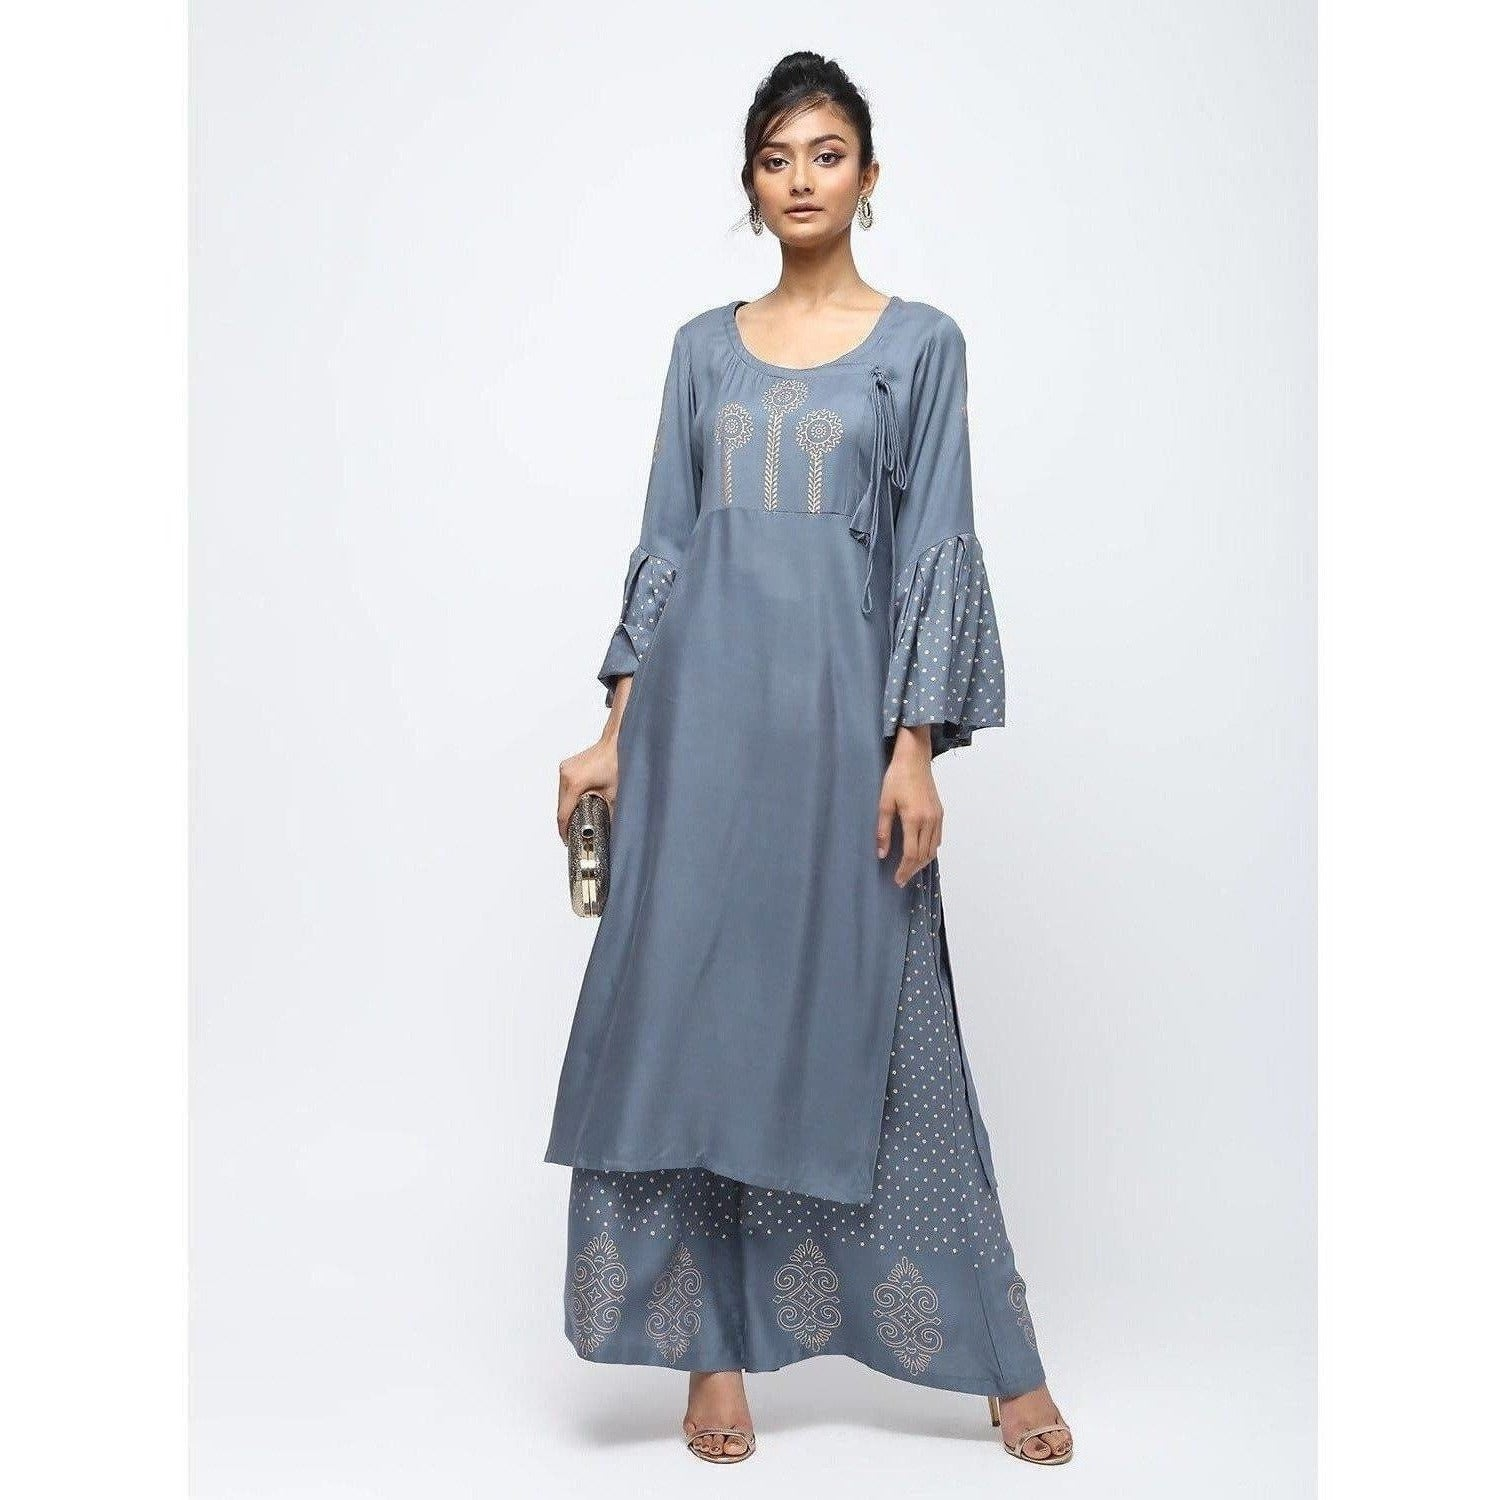 Cheera Flair Kurta With Bell Sleeve Design And Straight Polkadoit Print Plazo